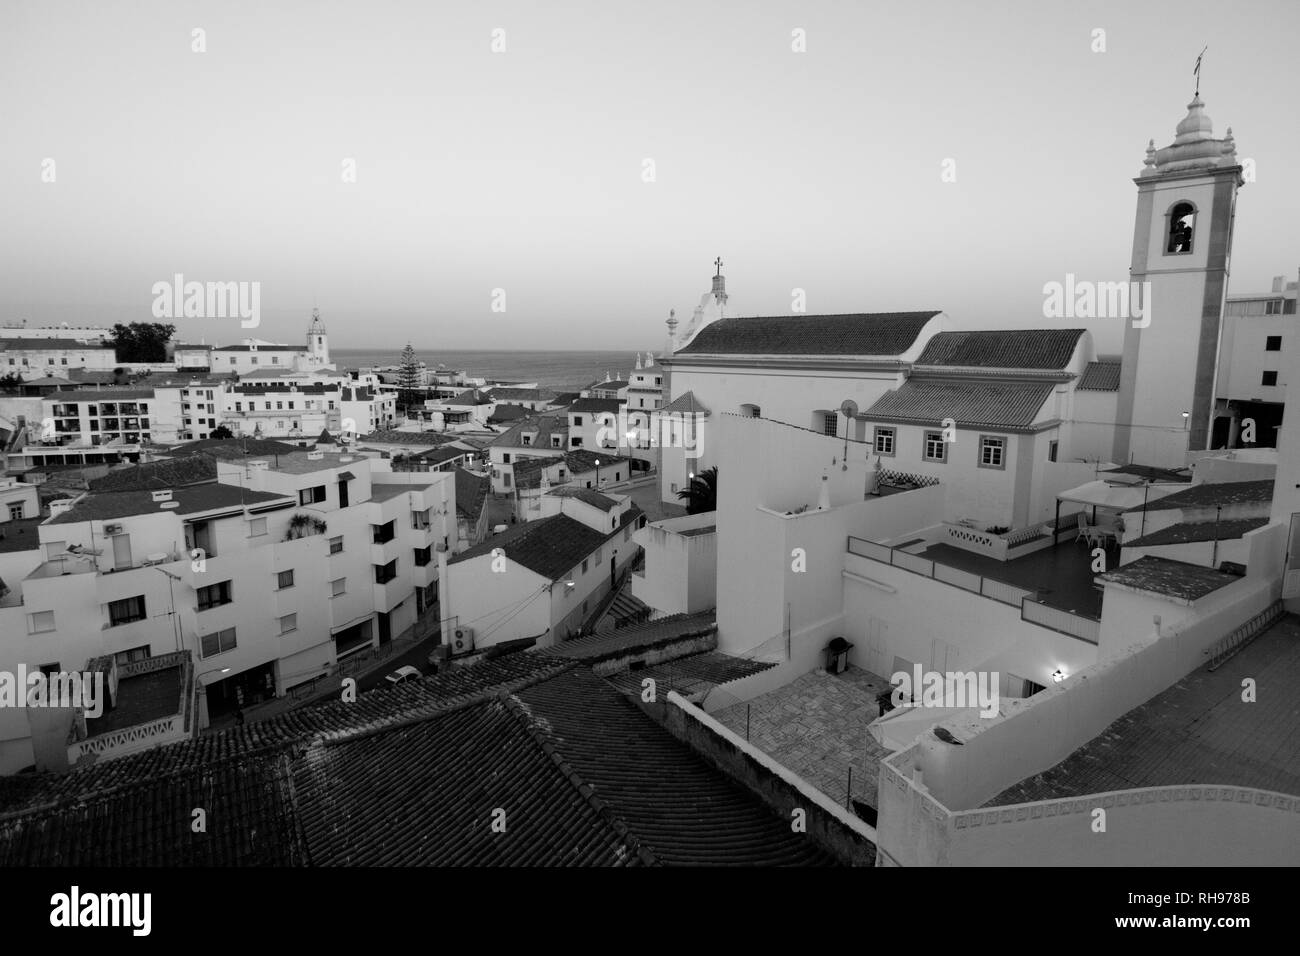 view of Albufeira old town in Portugal - Stock Image